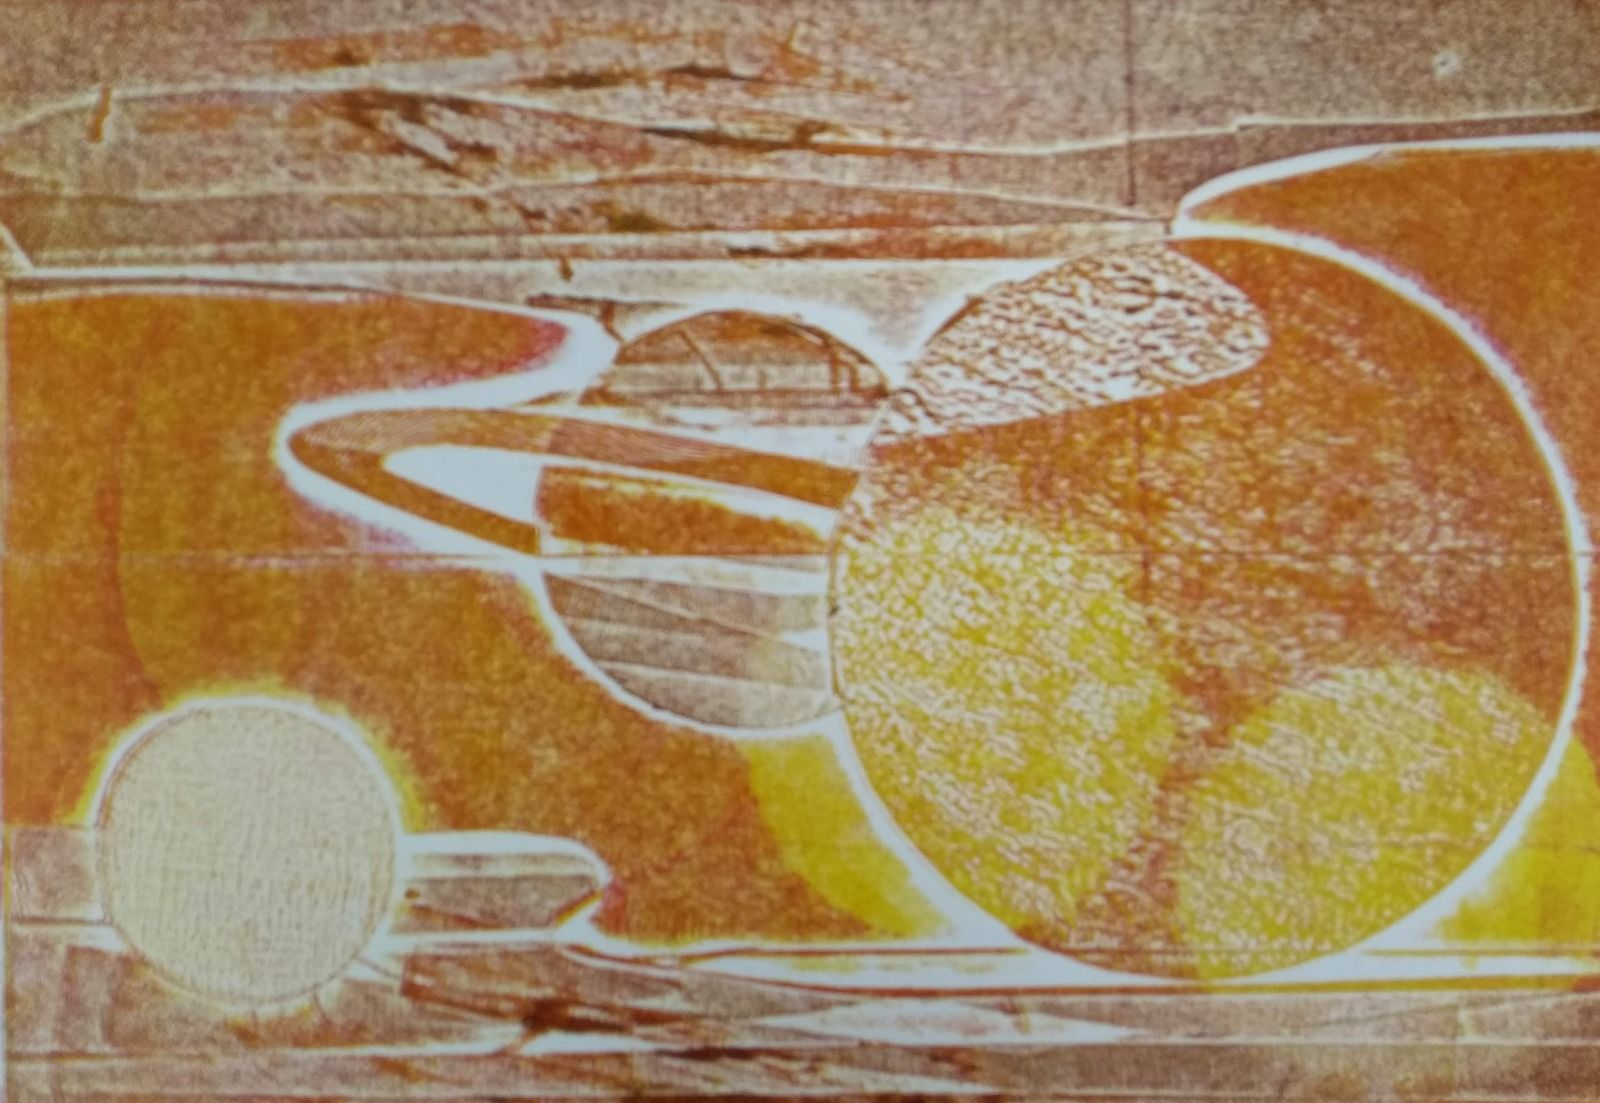 Collagraphy, planets, solar system, space, orange, tangerine